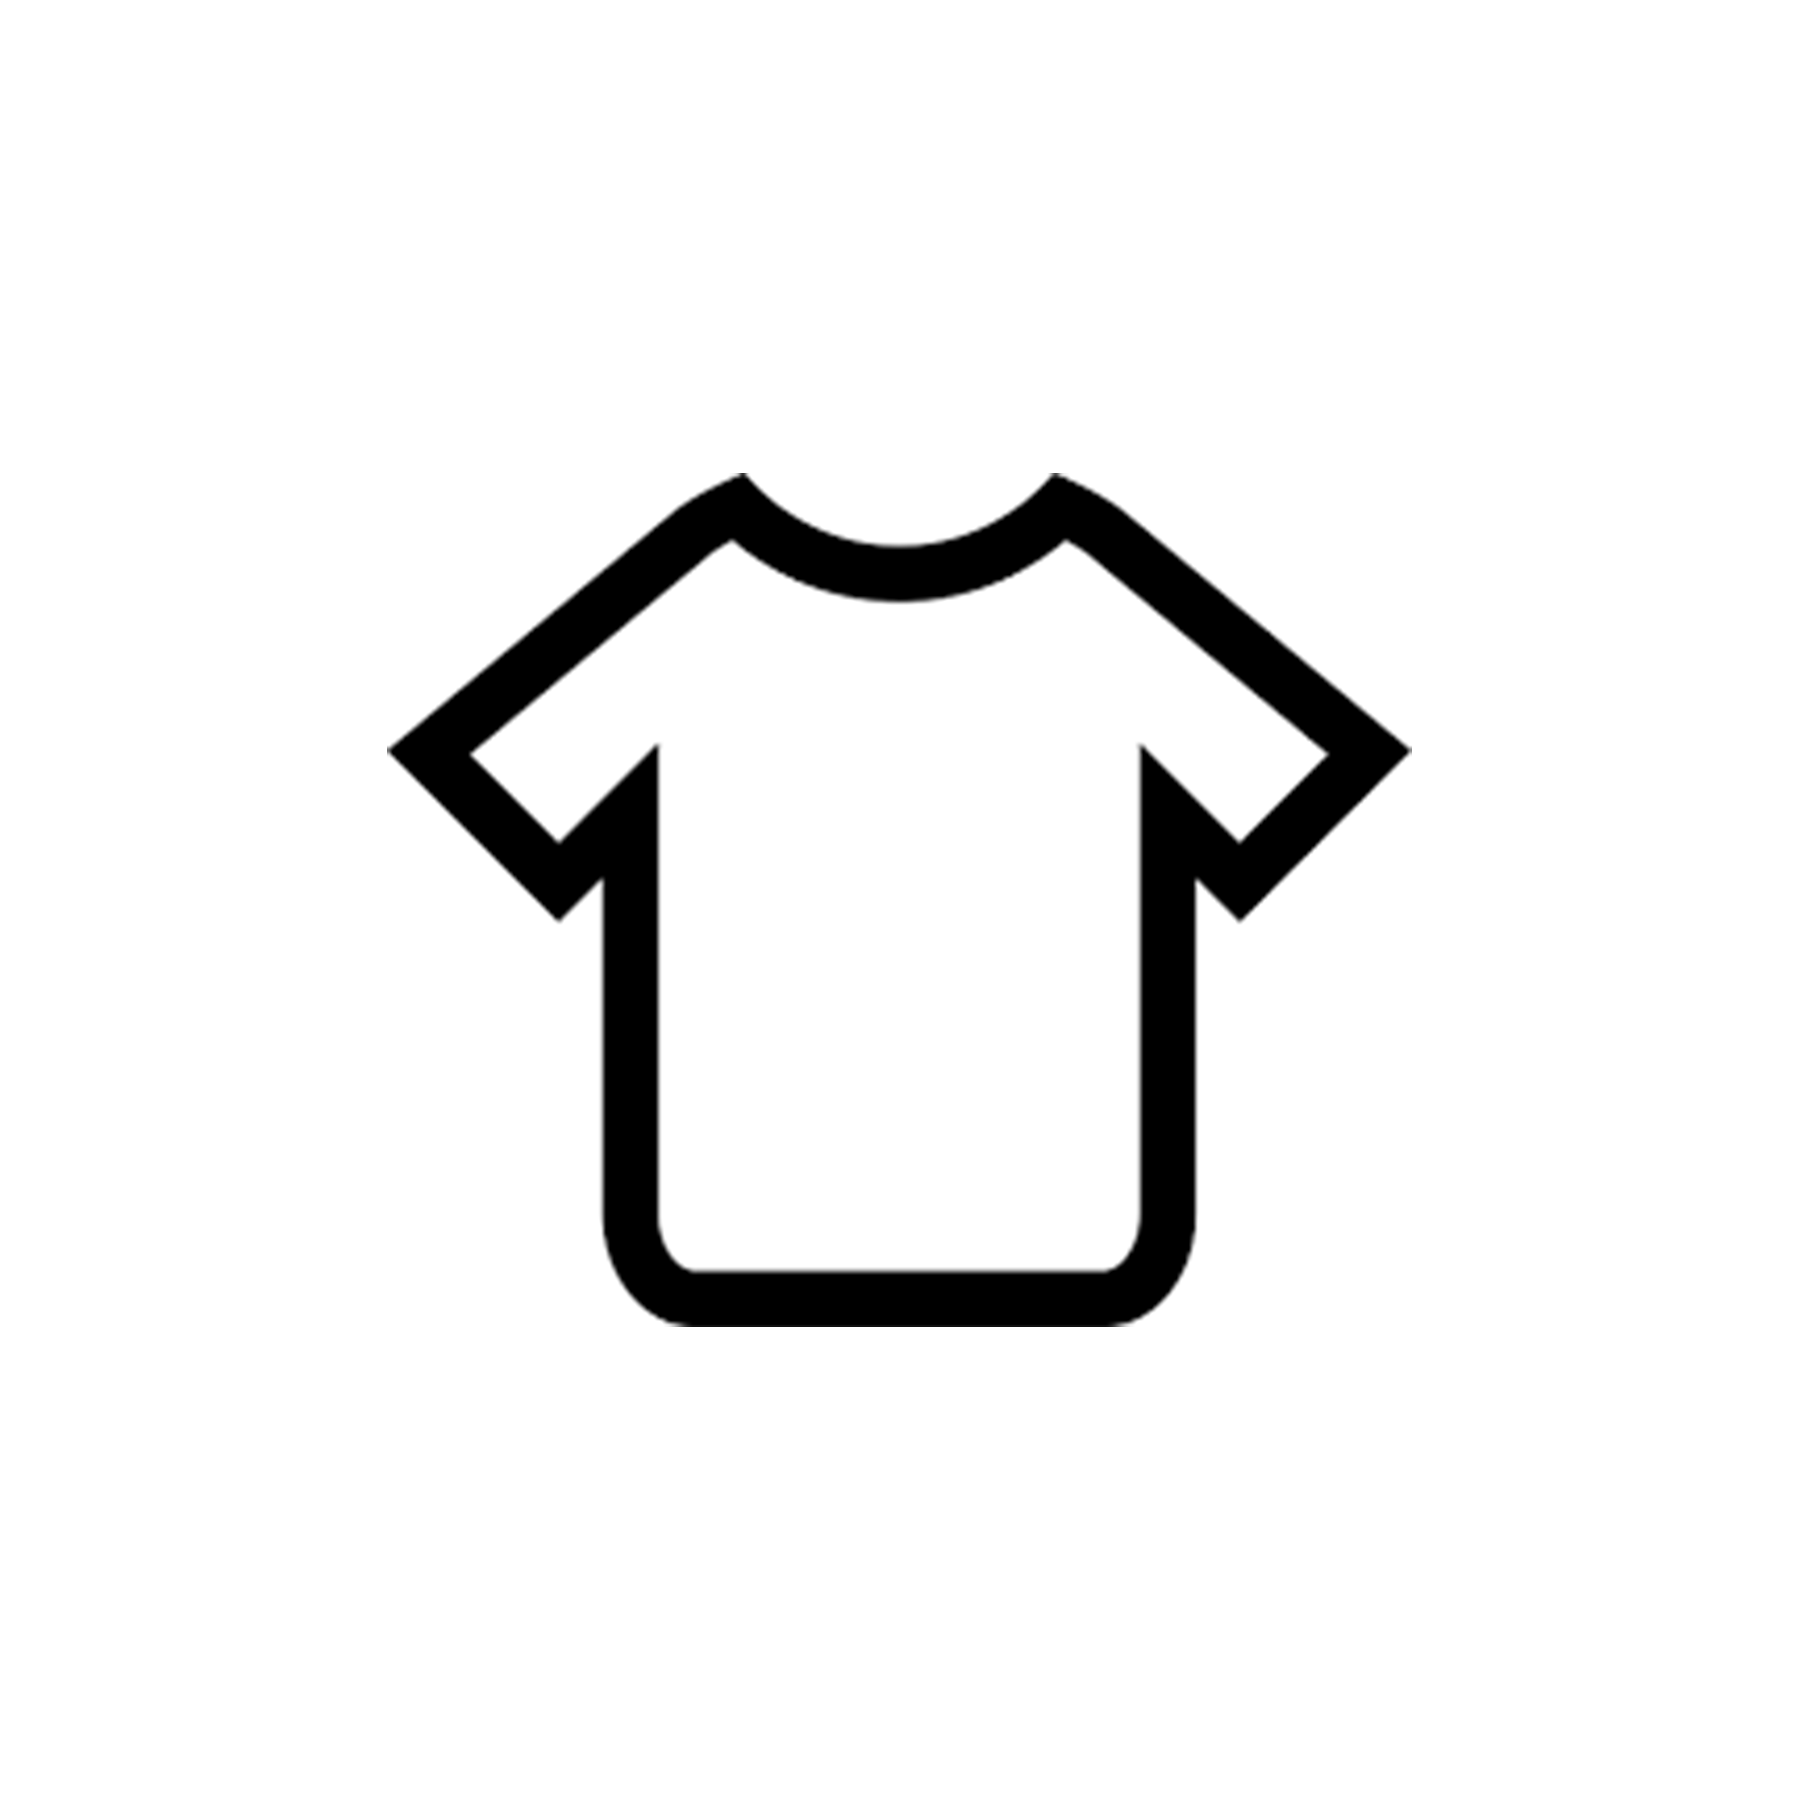 T SHIRT DESIGN - Whether you have an existing design, or an idea in mind,